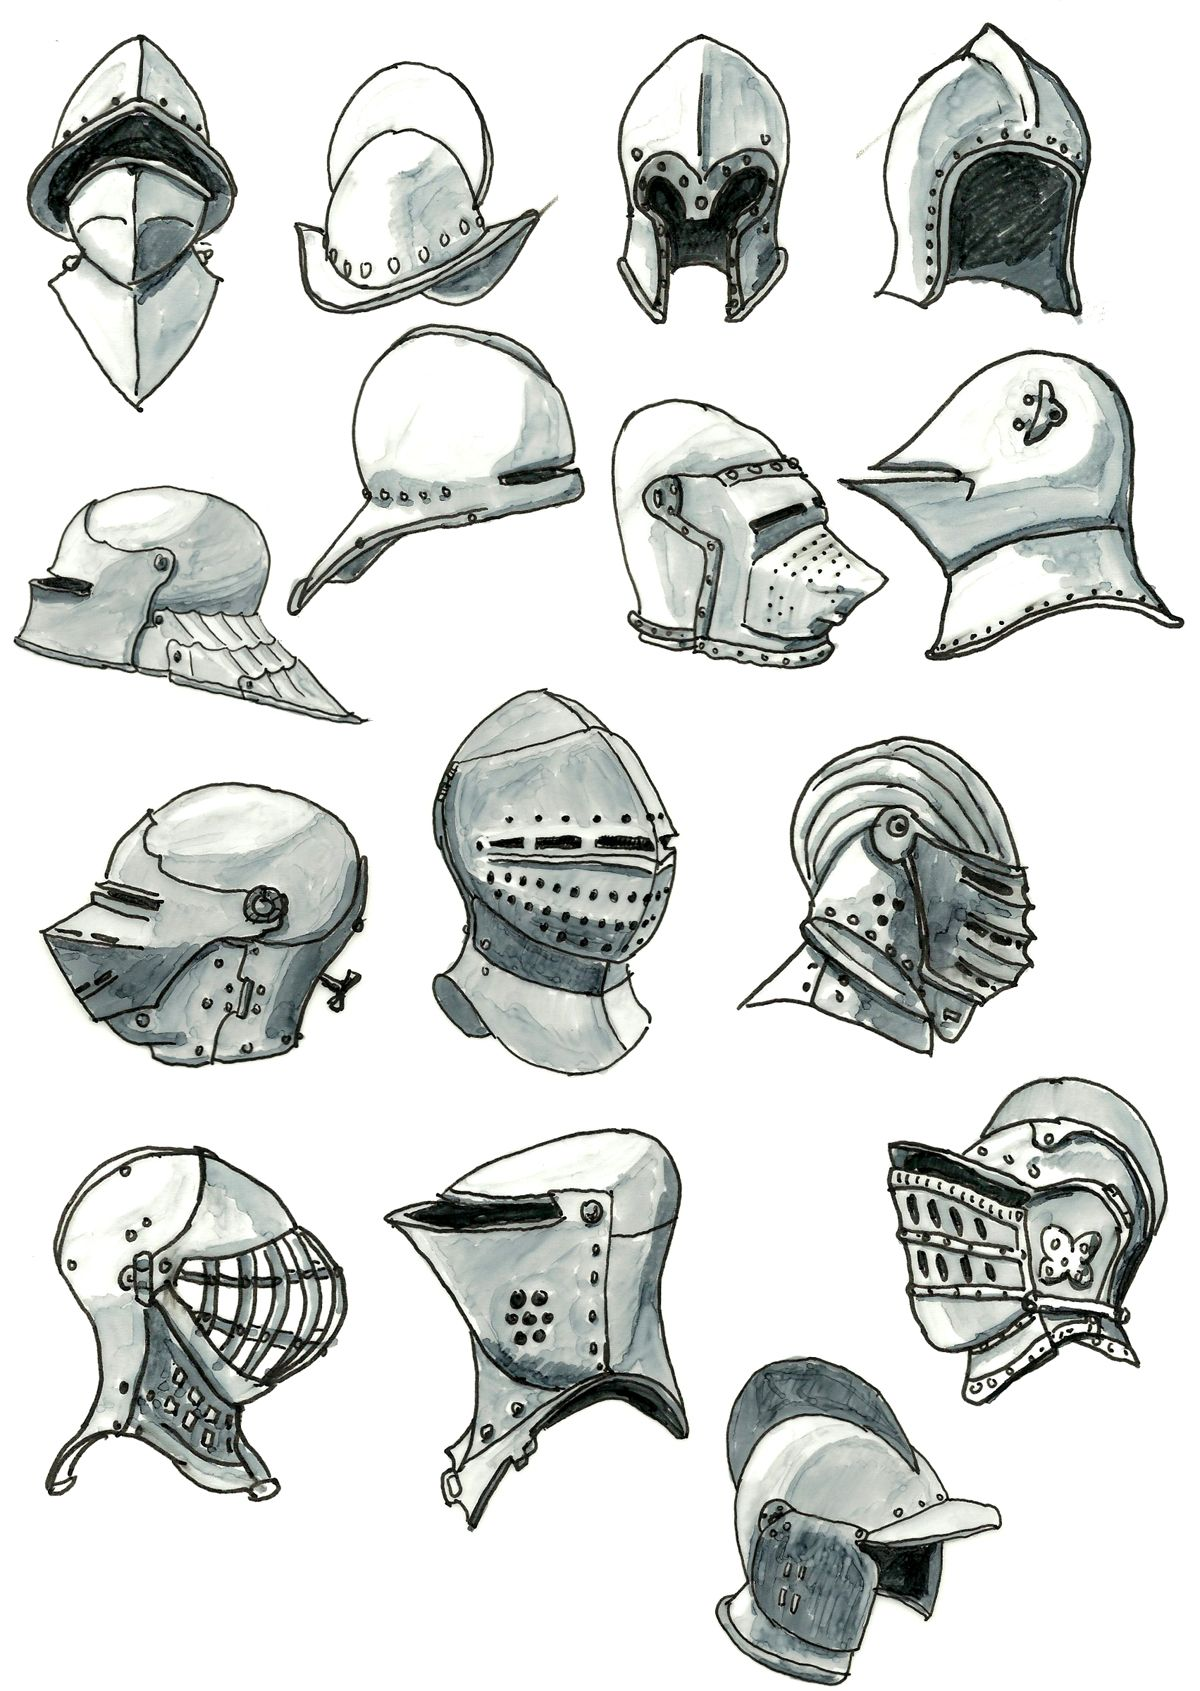 Medieval Helmet Drawing : medieval, helmet, drawing, Helmets, Kluwe, DeviantART, Armor, Drawing,, Concept, Characters,, Medieval